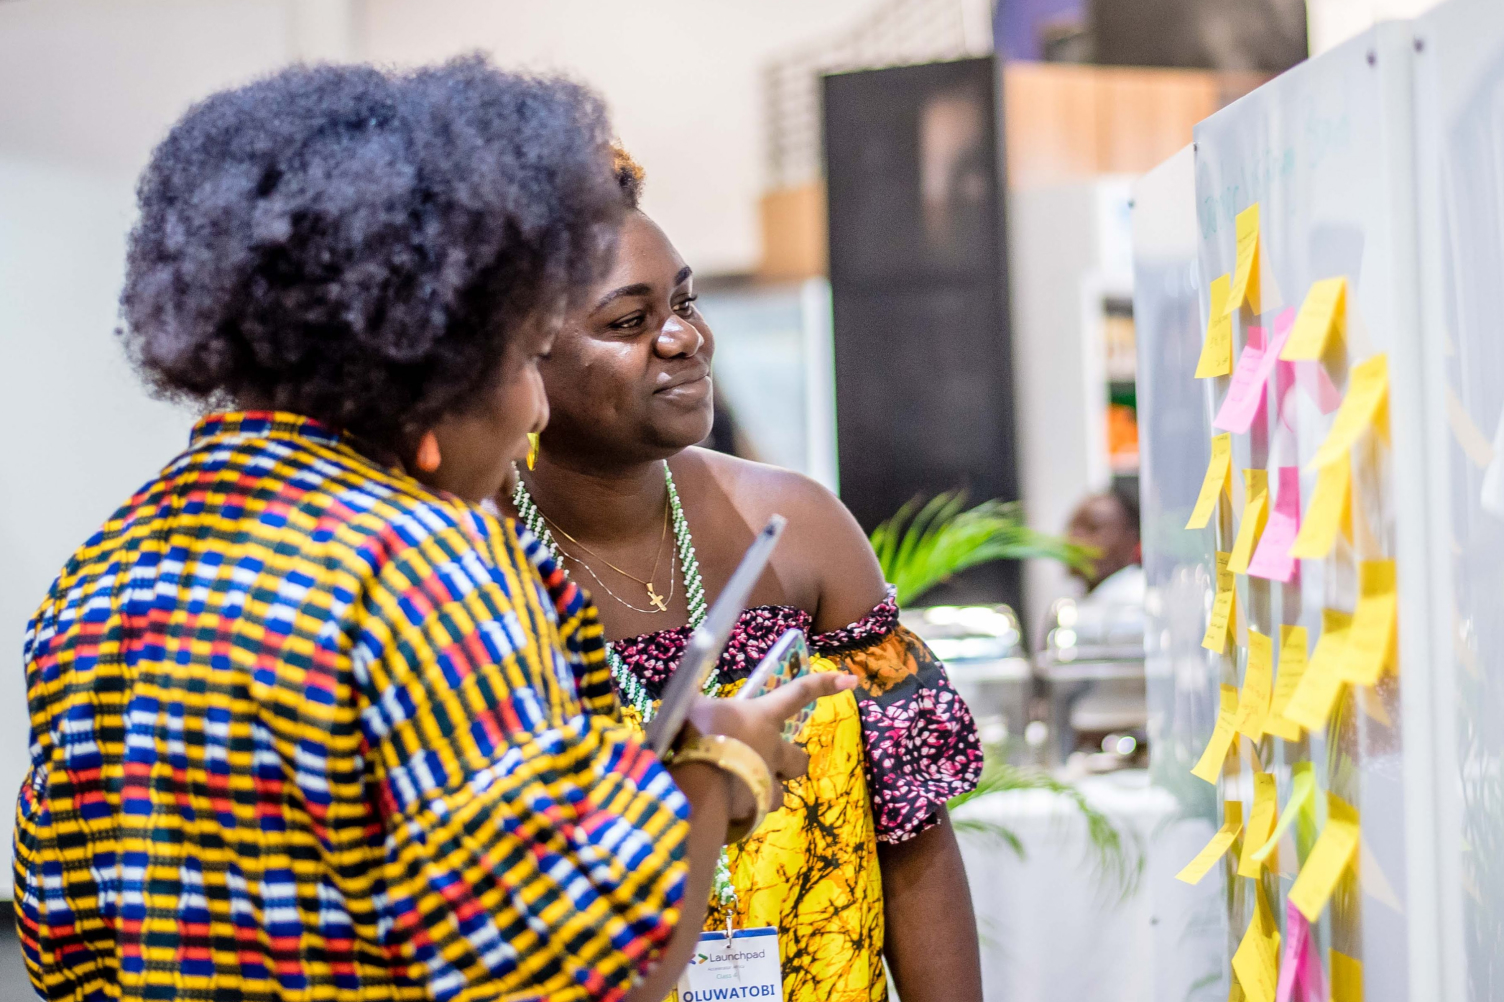 Two women working with post-it notes on a whiteboard, smiling